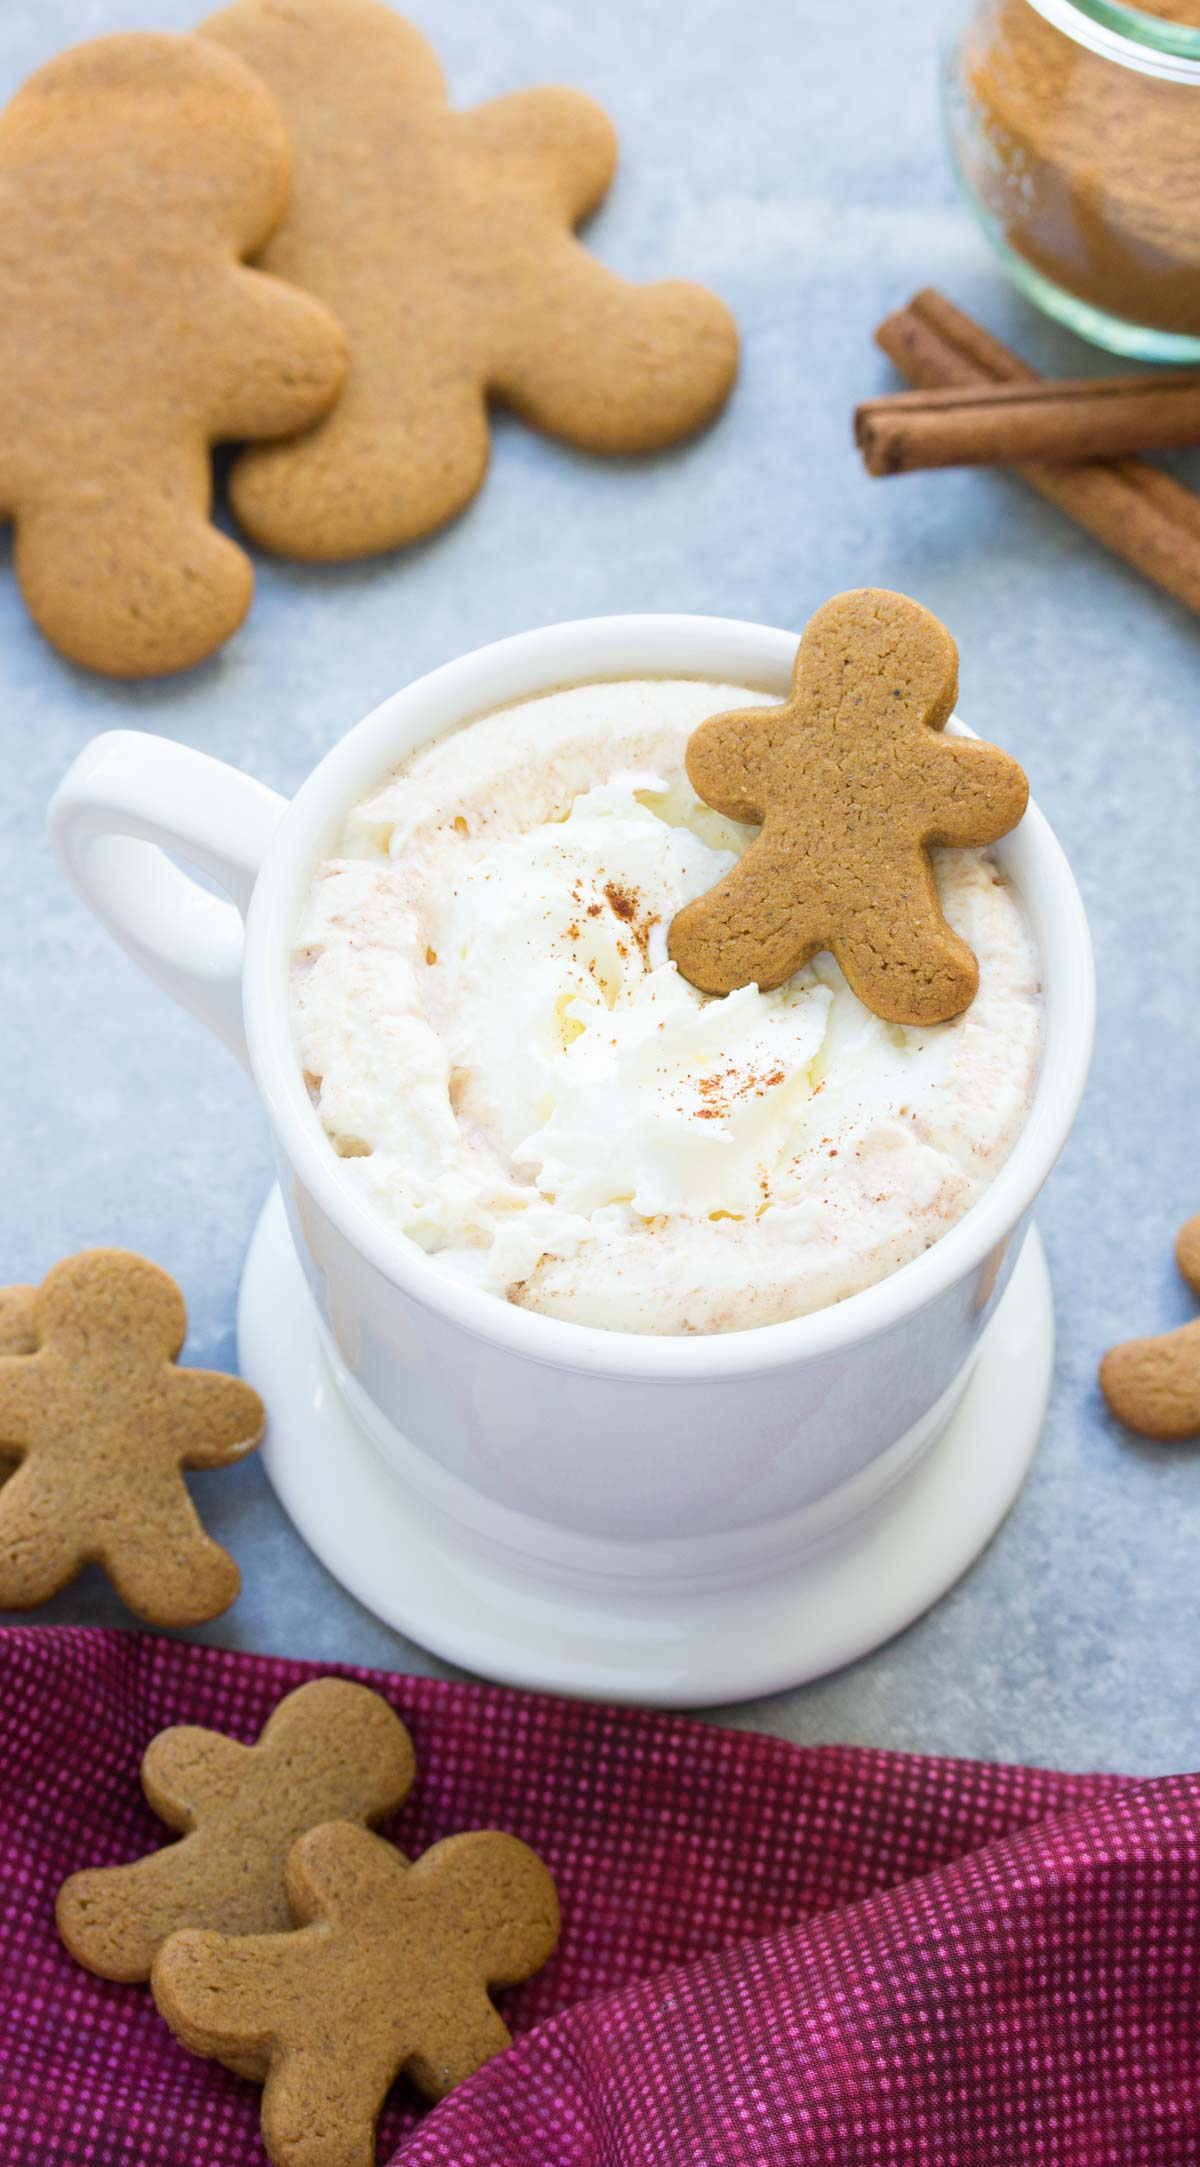 This easy microwave gingerbread hot cocoa is one of our favorite holiday treats! With just a few ingredients, it's quick to make and fun to drink! | www.kristineskitchenblog.com